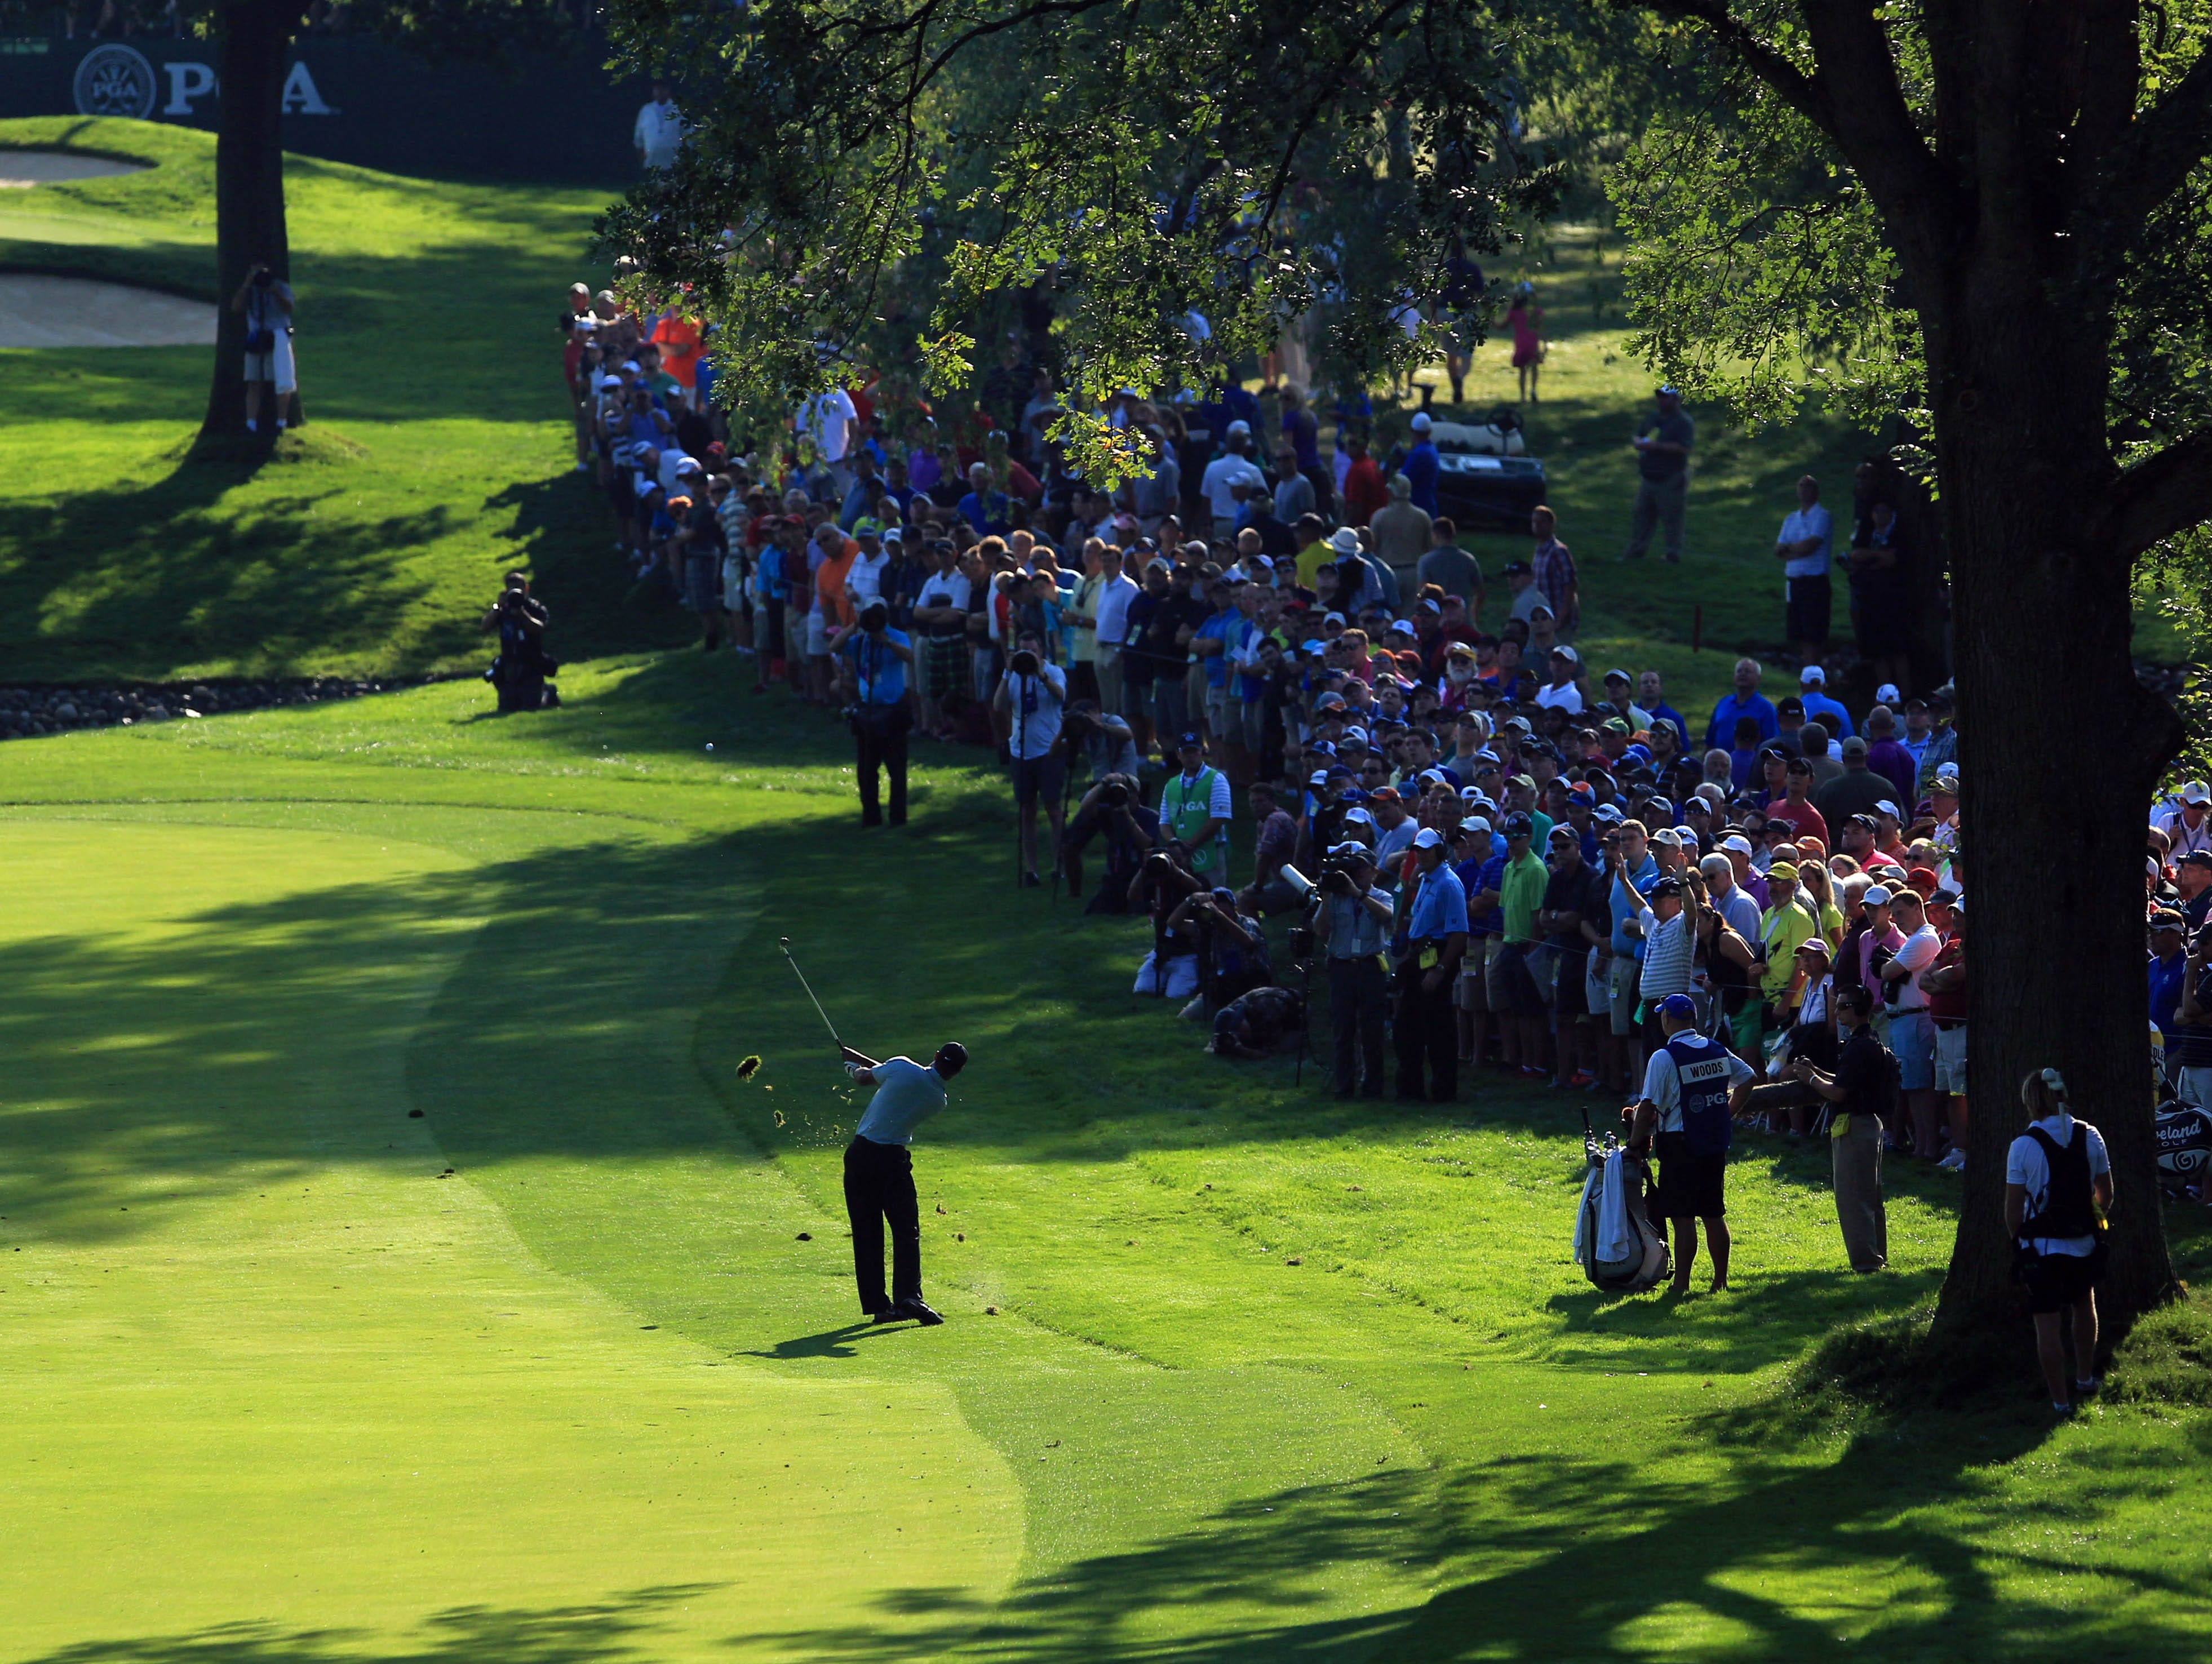 Tiger Woods plays a shot on the 10th hole during the first round of the 95th PGA Championship at Oak Hill Country Club.